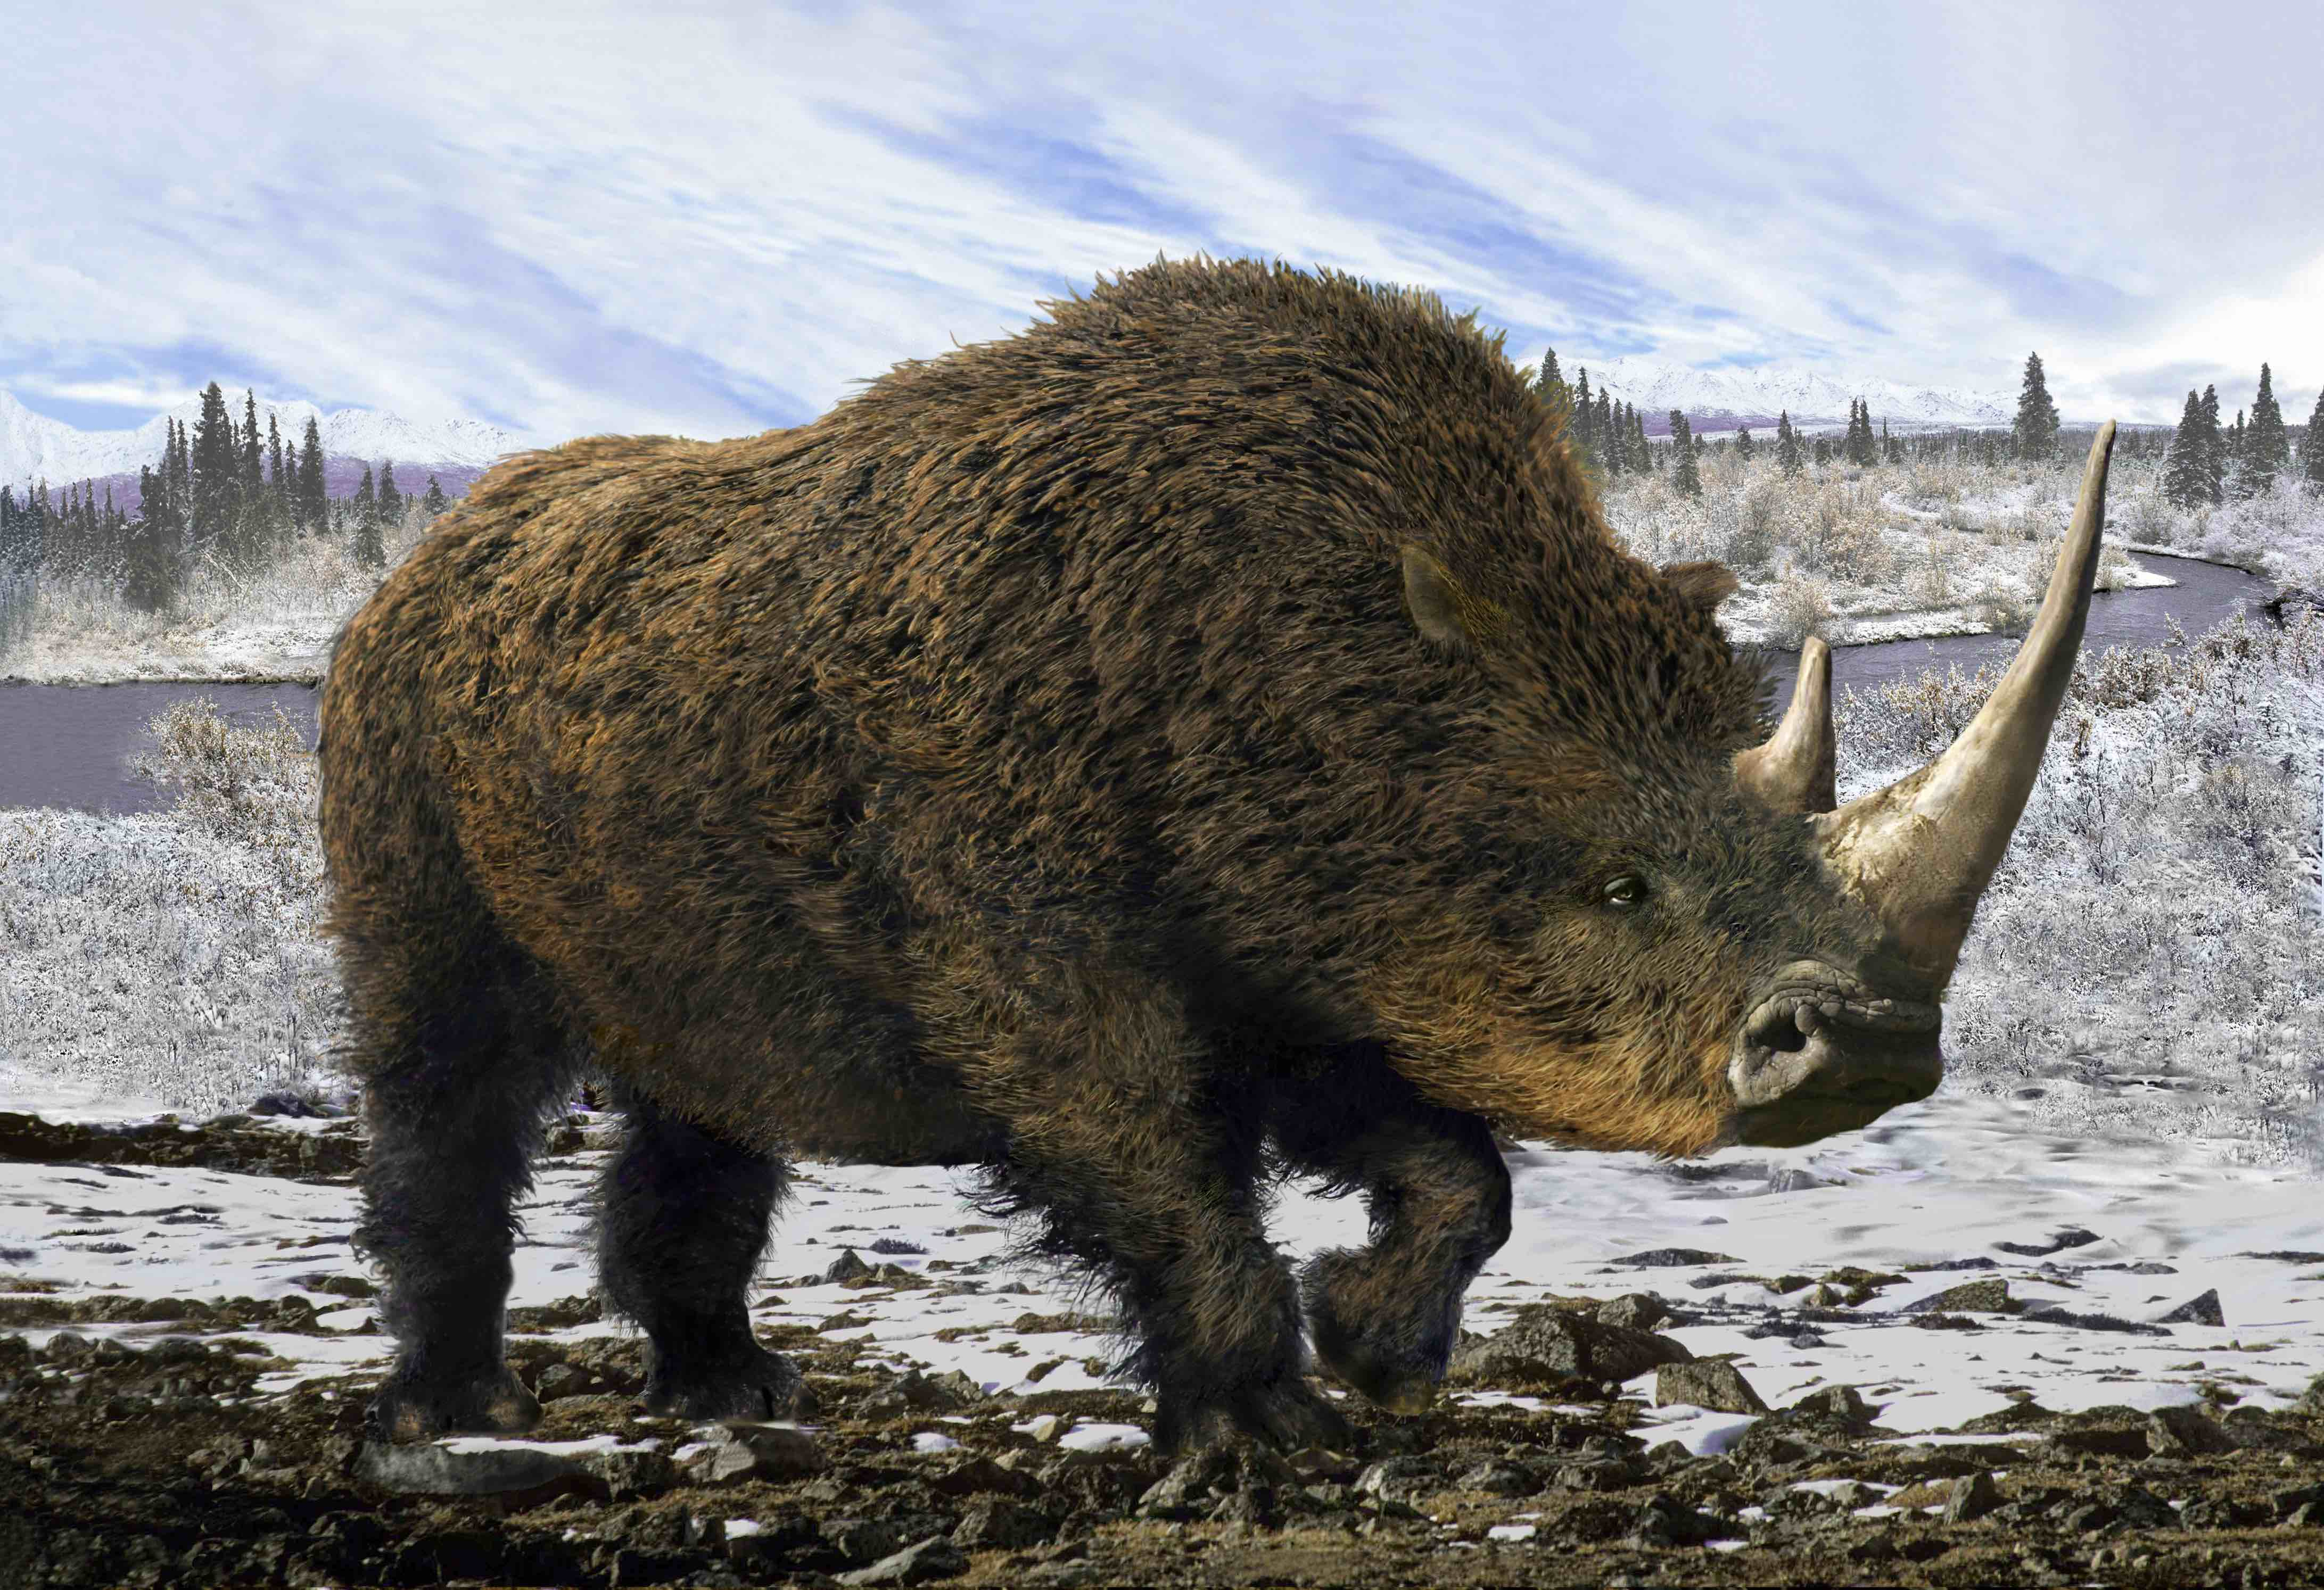 Good news: Humans aren't responsible for woolly rhino extinction